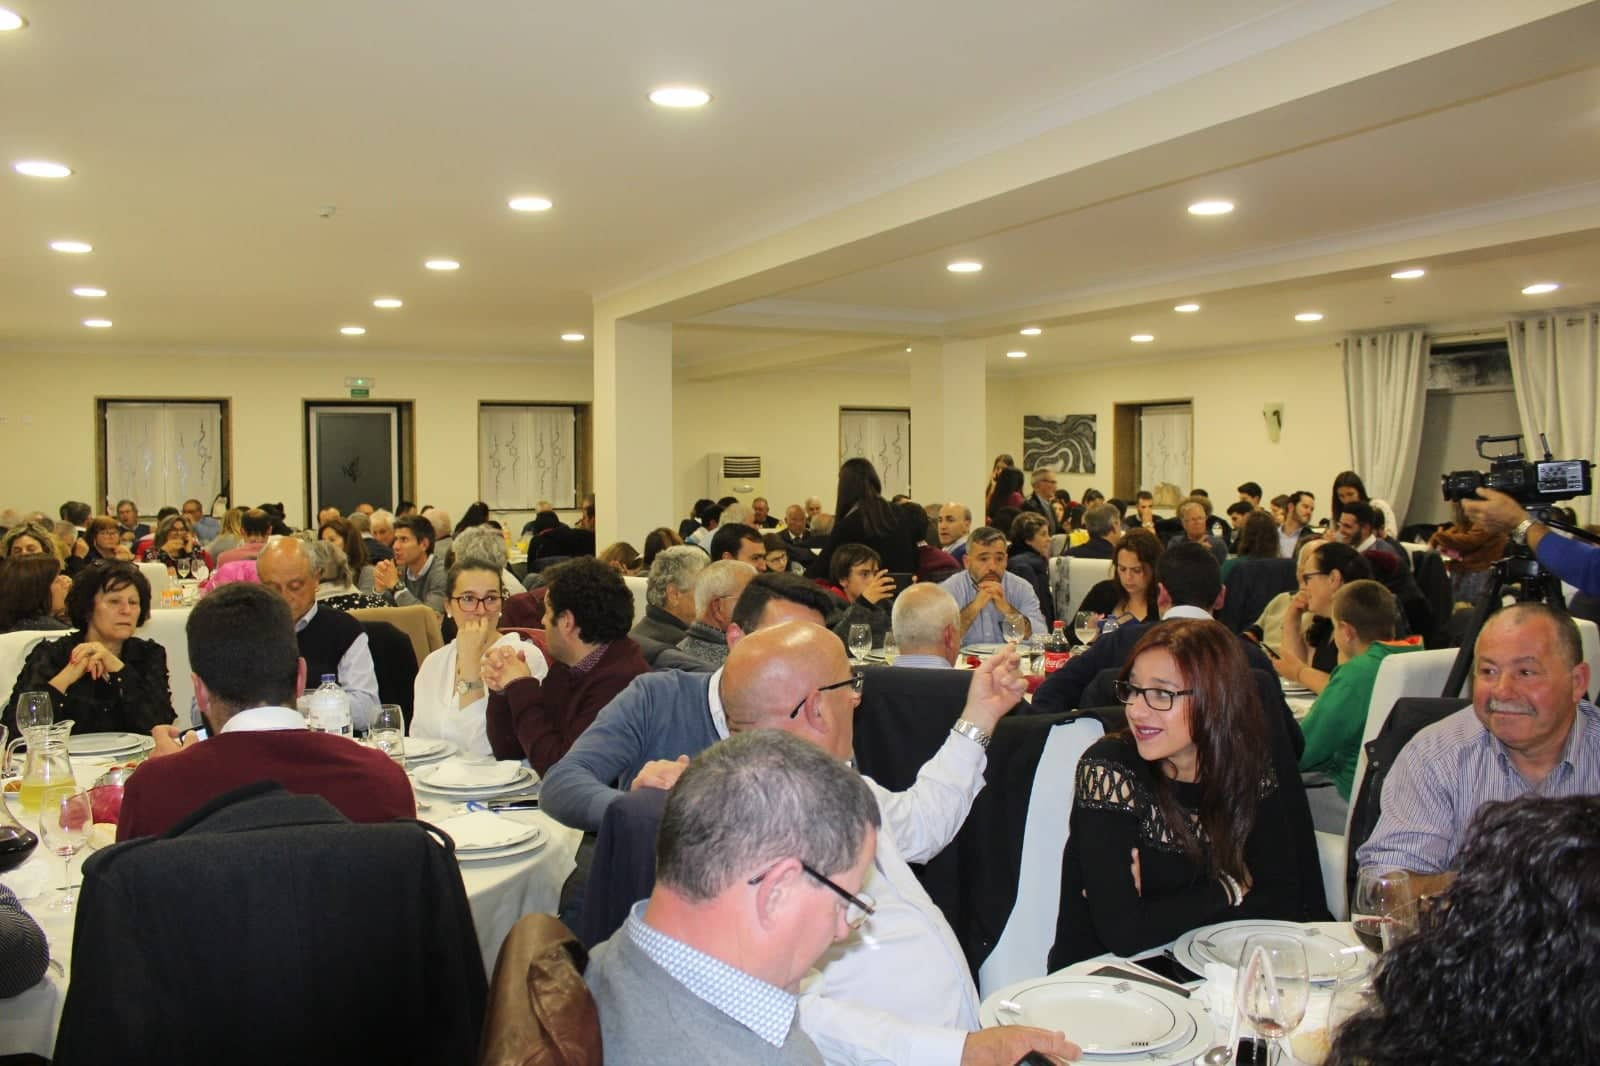 Jantar do PS Penafiel reúne 300 penafidelenses a celebrar Abril